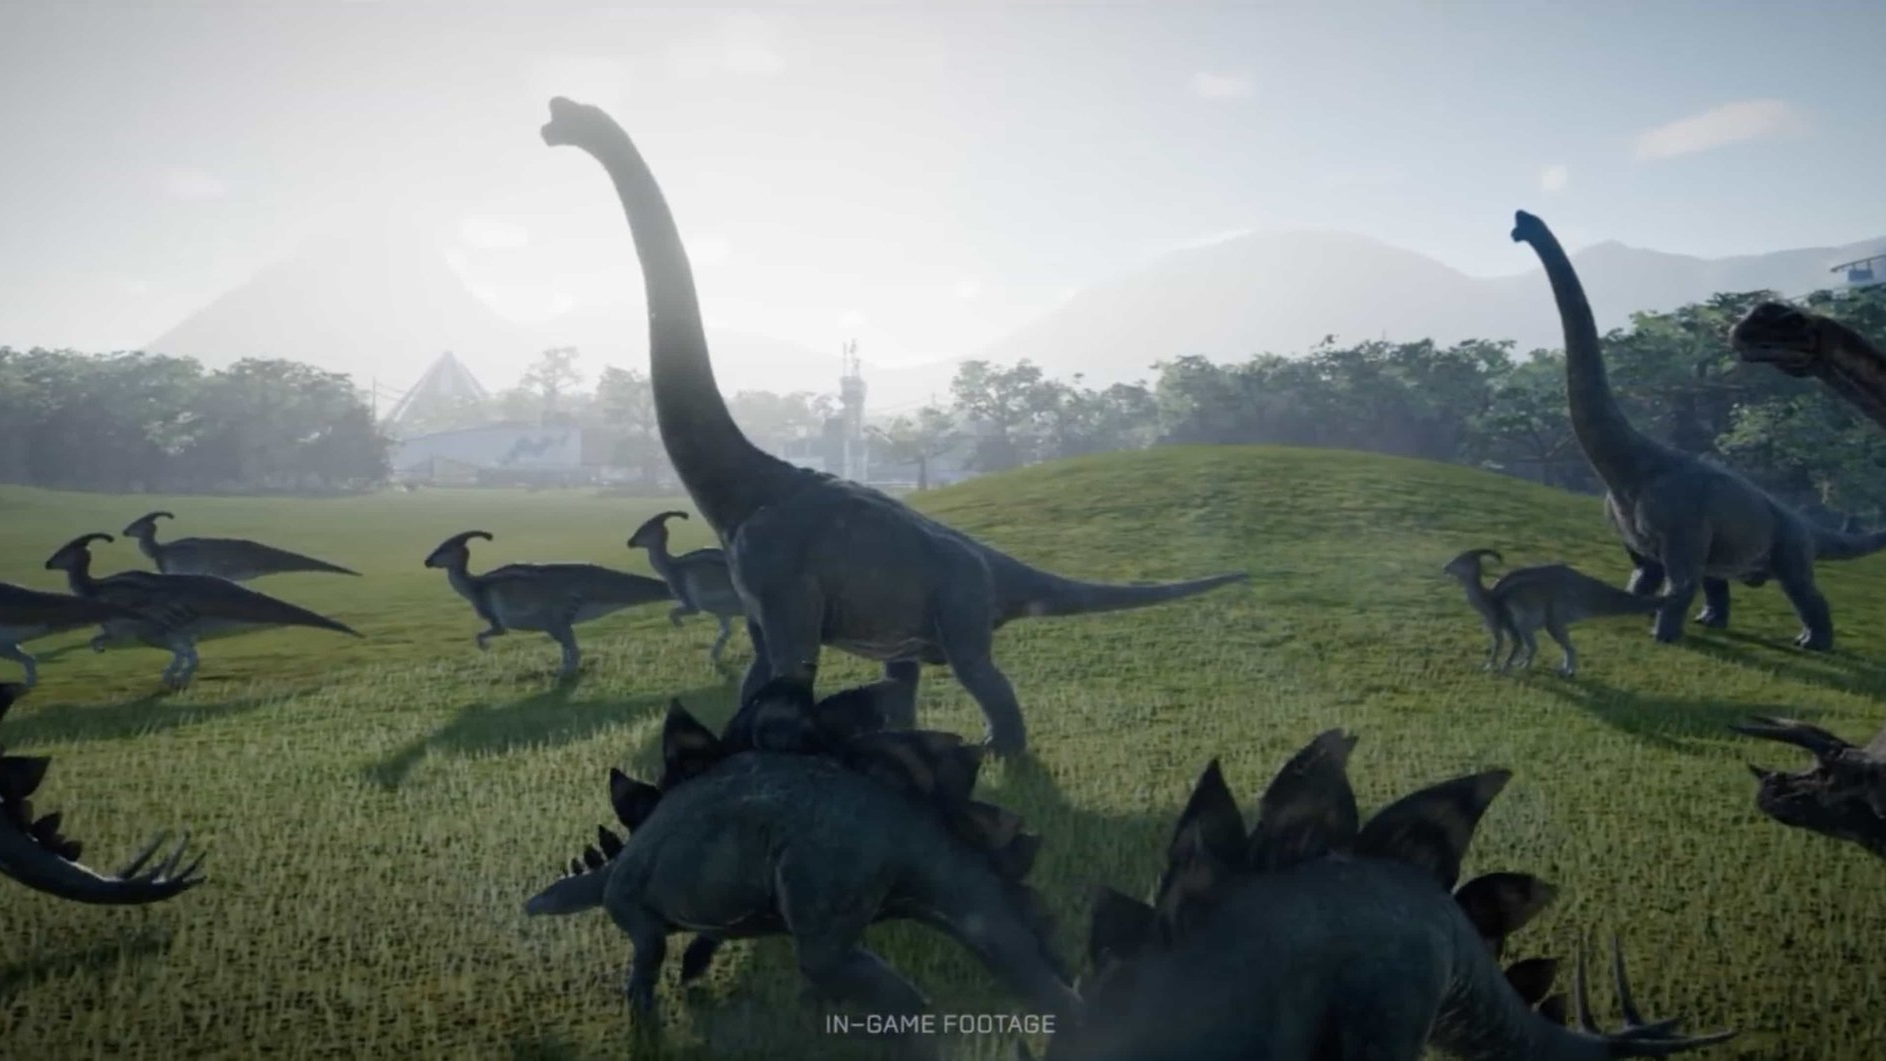 Vamers-Gaming-Jurassic-World-Evolutions-first-in-game-footage-is-Wondrous-1.jpg